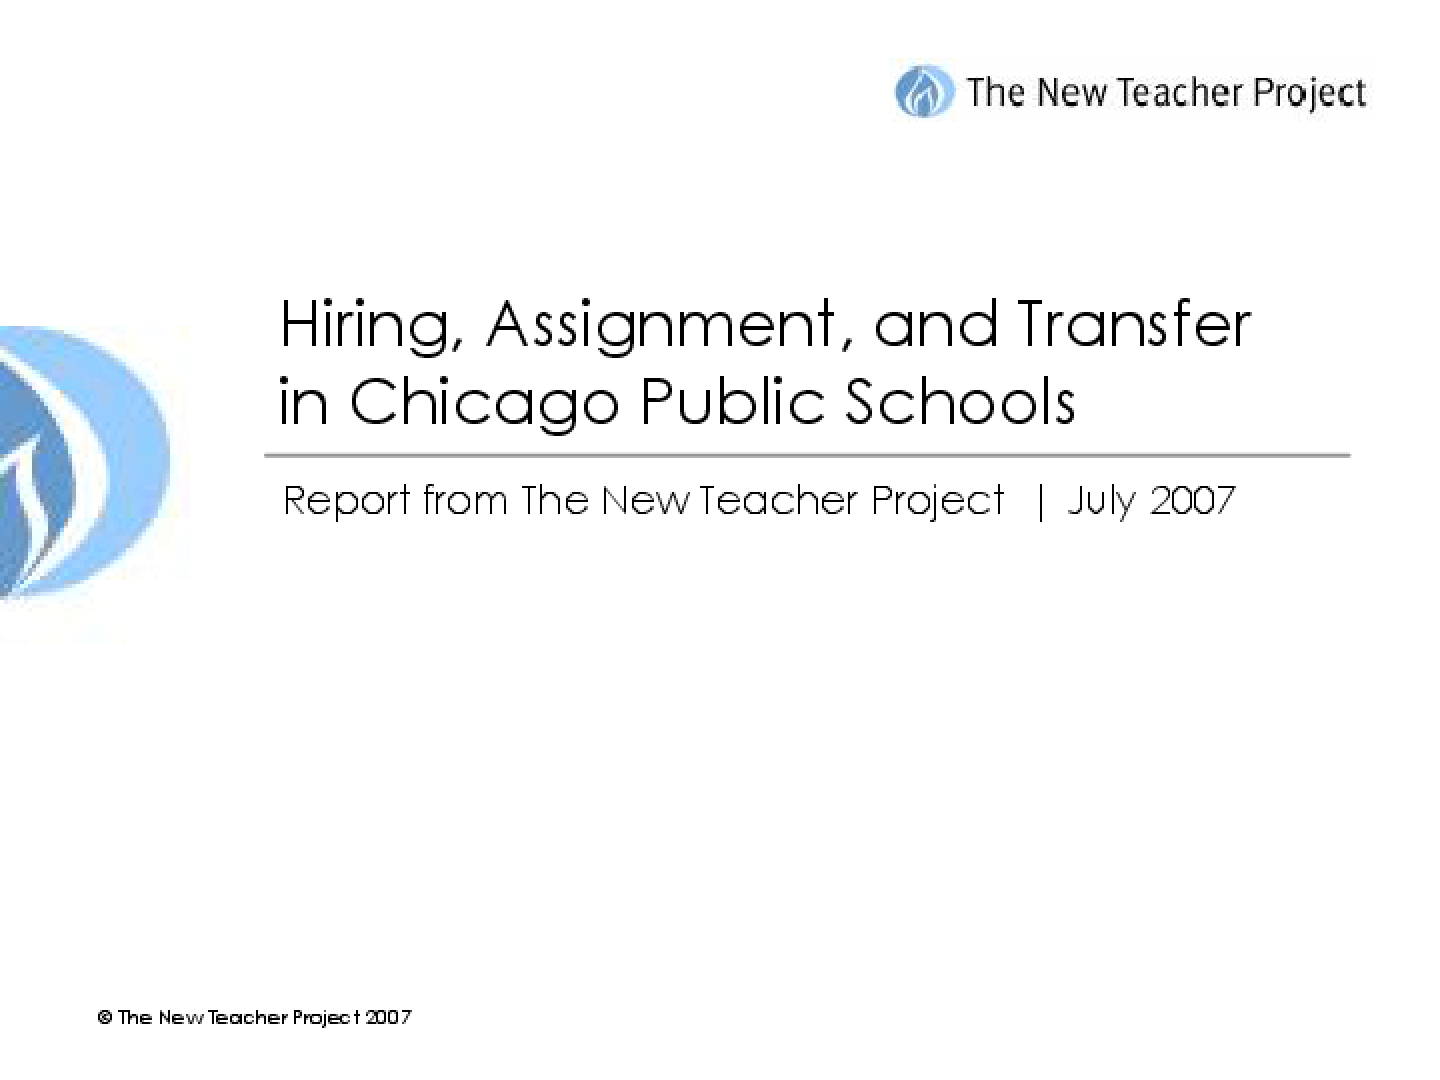 Hiring, Assignment, and Transfer in Chicago Public Schools